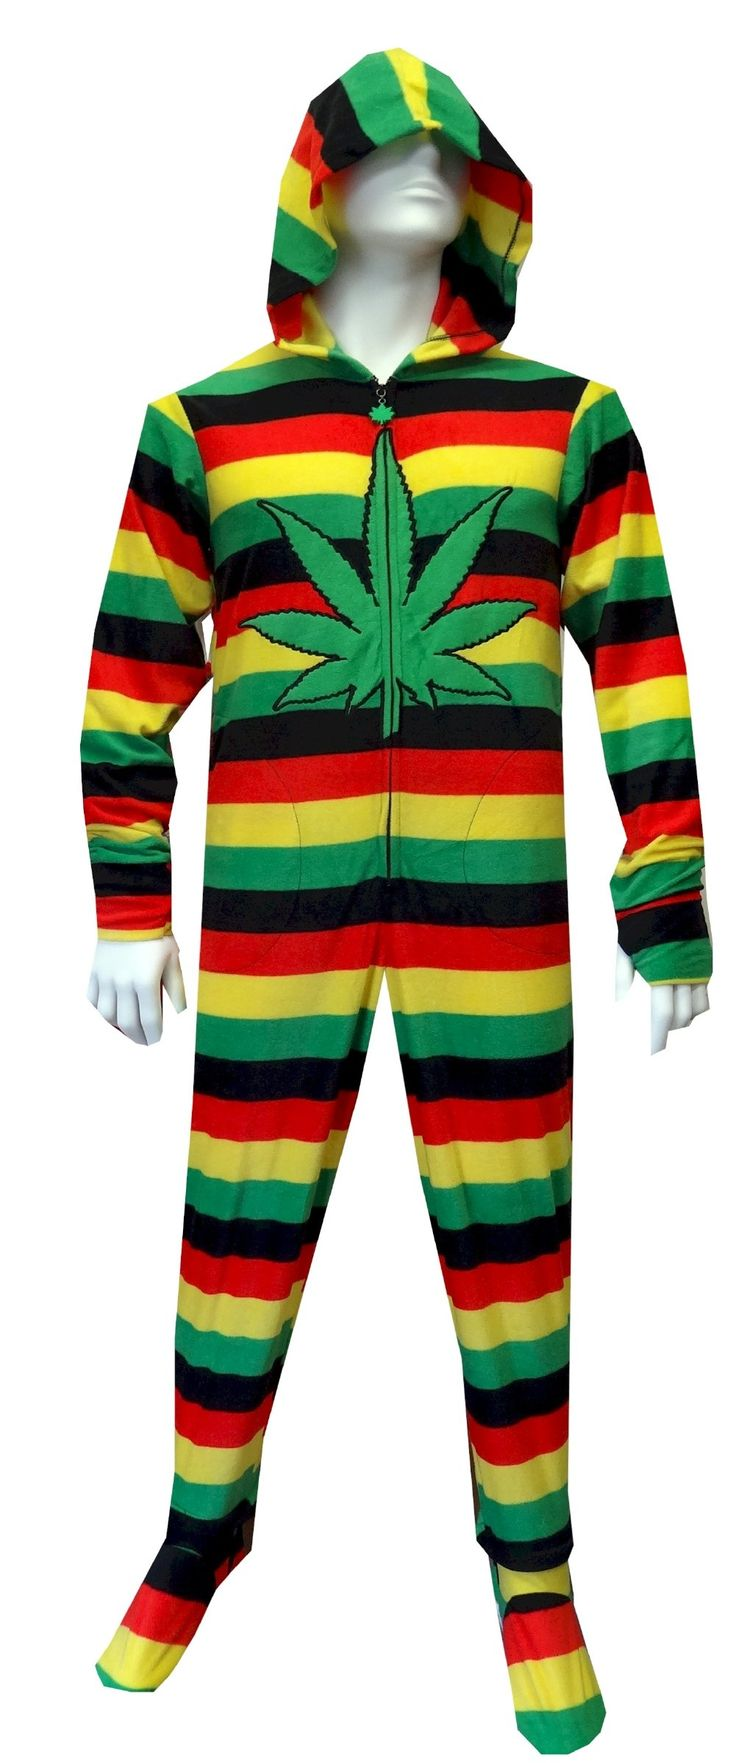 Weedman Route 420 Adult Footie Onesie Pajamas with Hood for men #Rosta #Marijuna #Cannabis